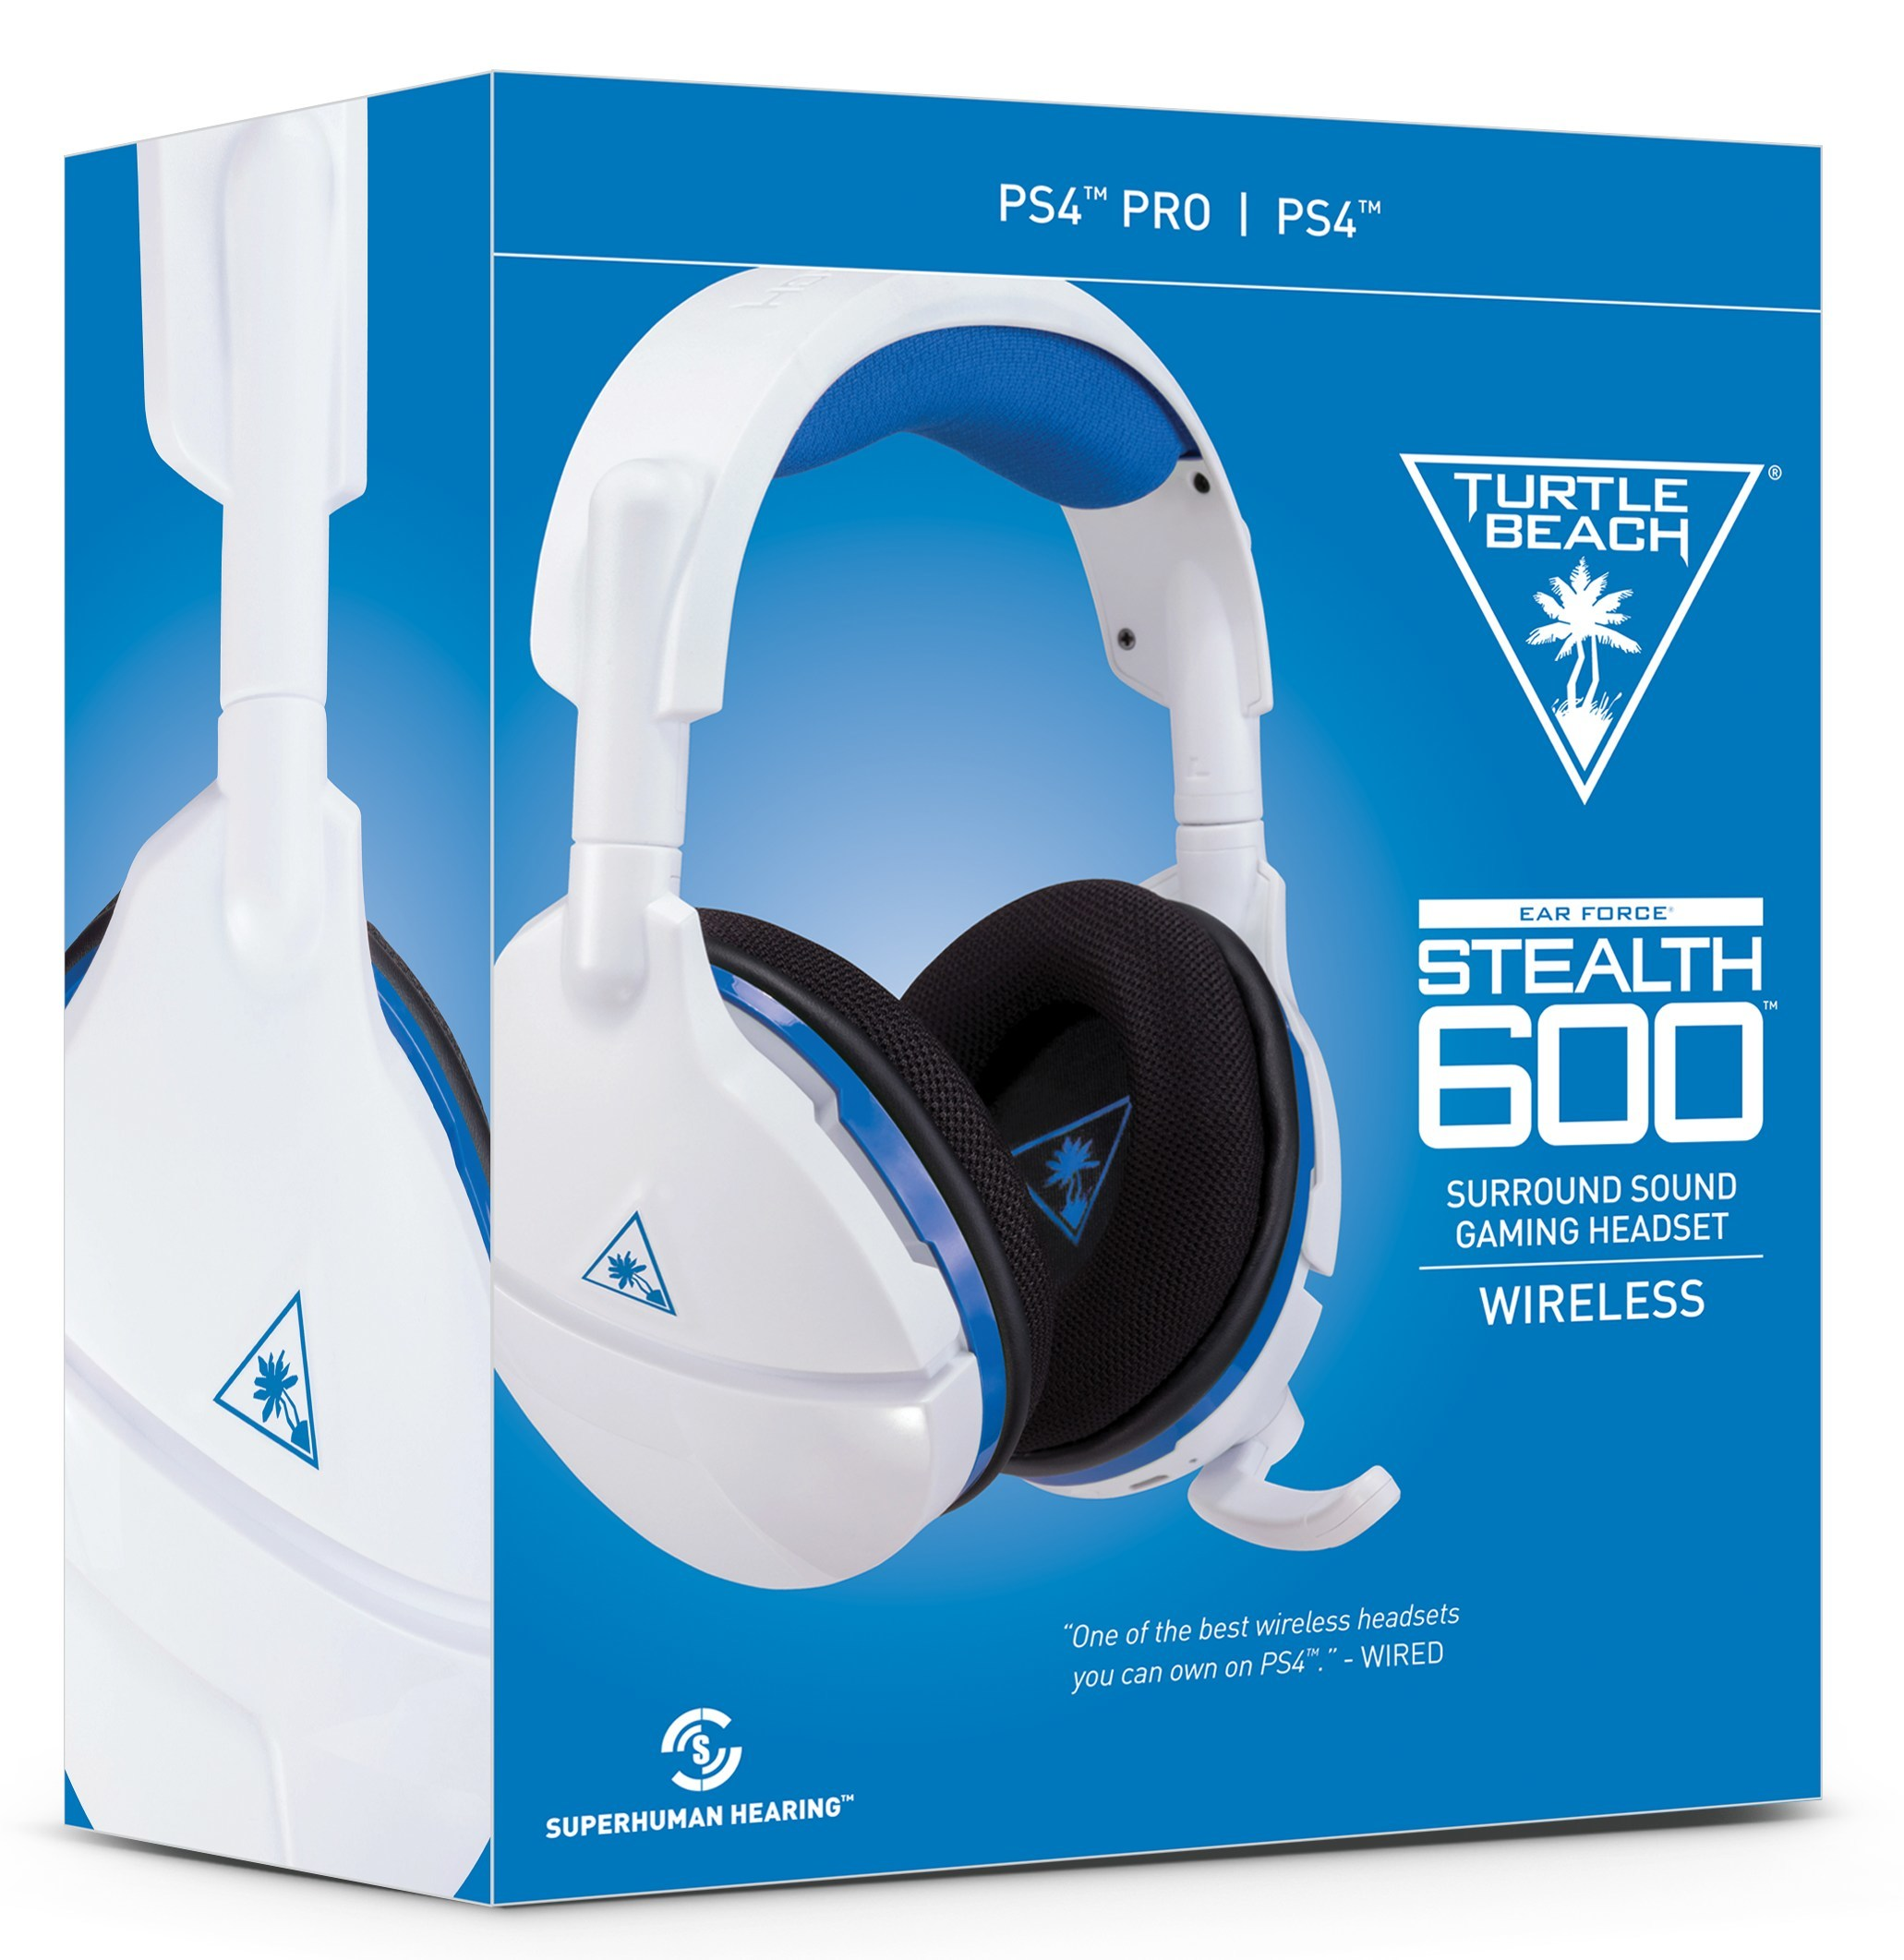 Turtle Beach S Best Selling Stealth 600 Gaming Headset For Xbox One And Playstation 4 Gets A New White Colorway For The Holidays